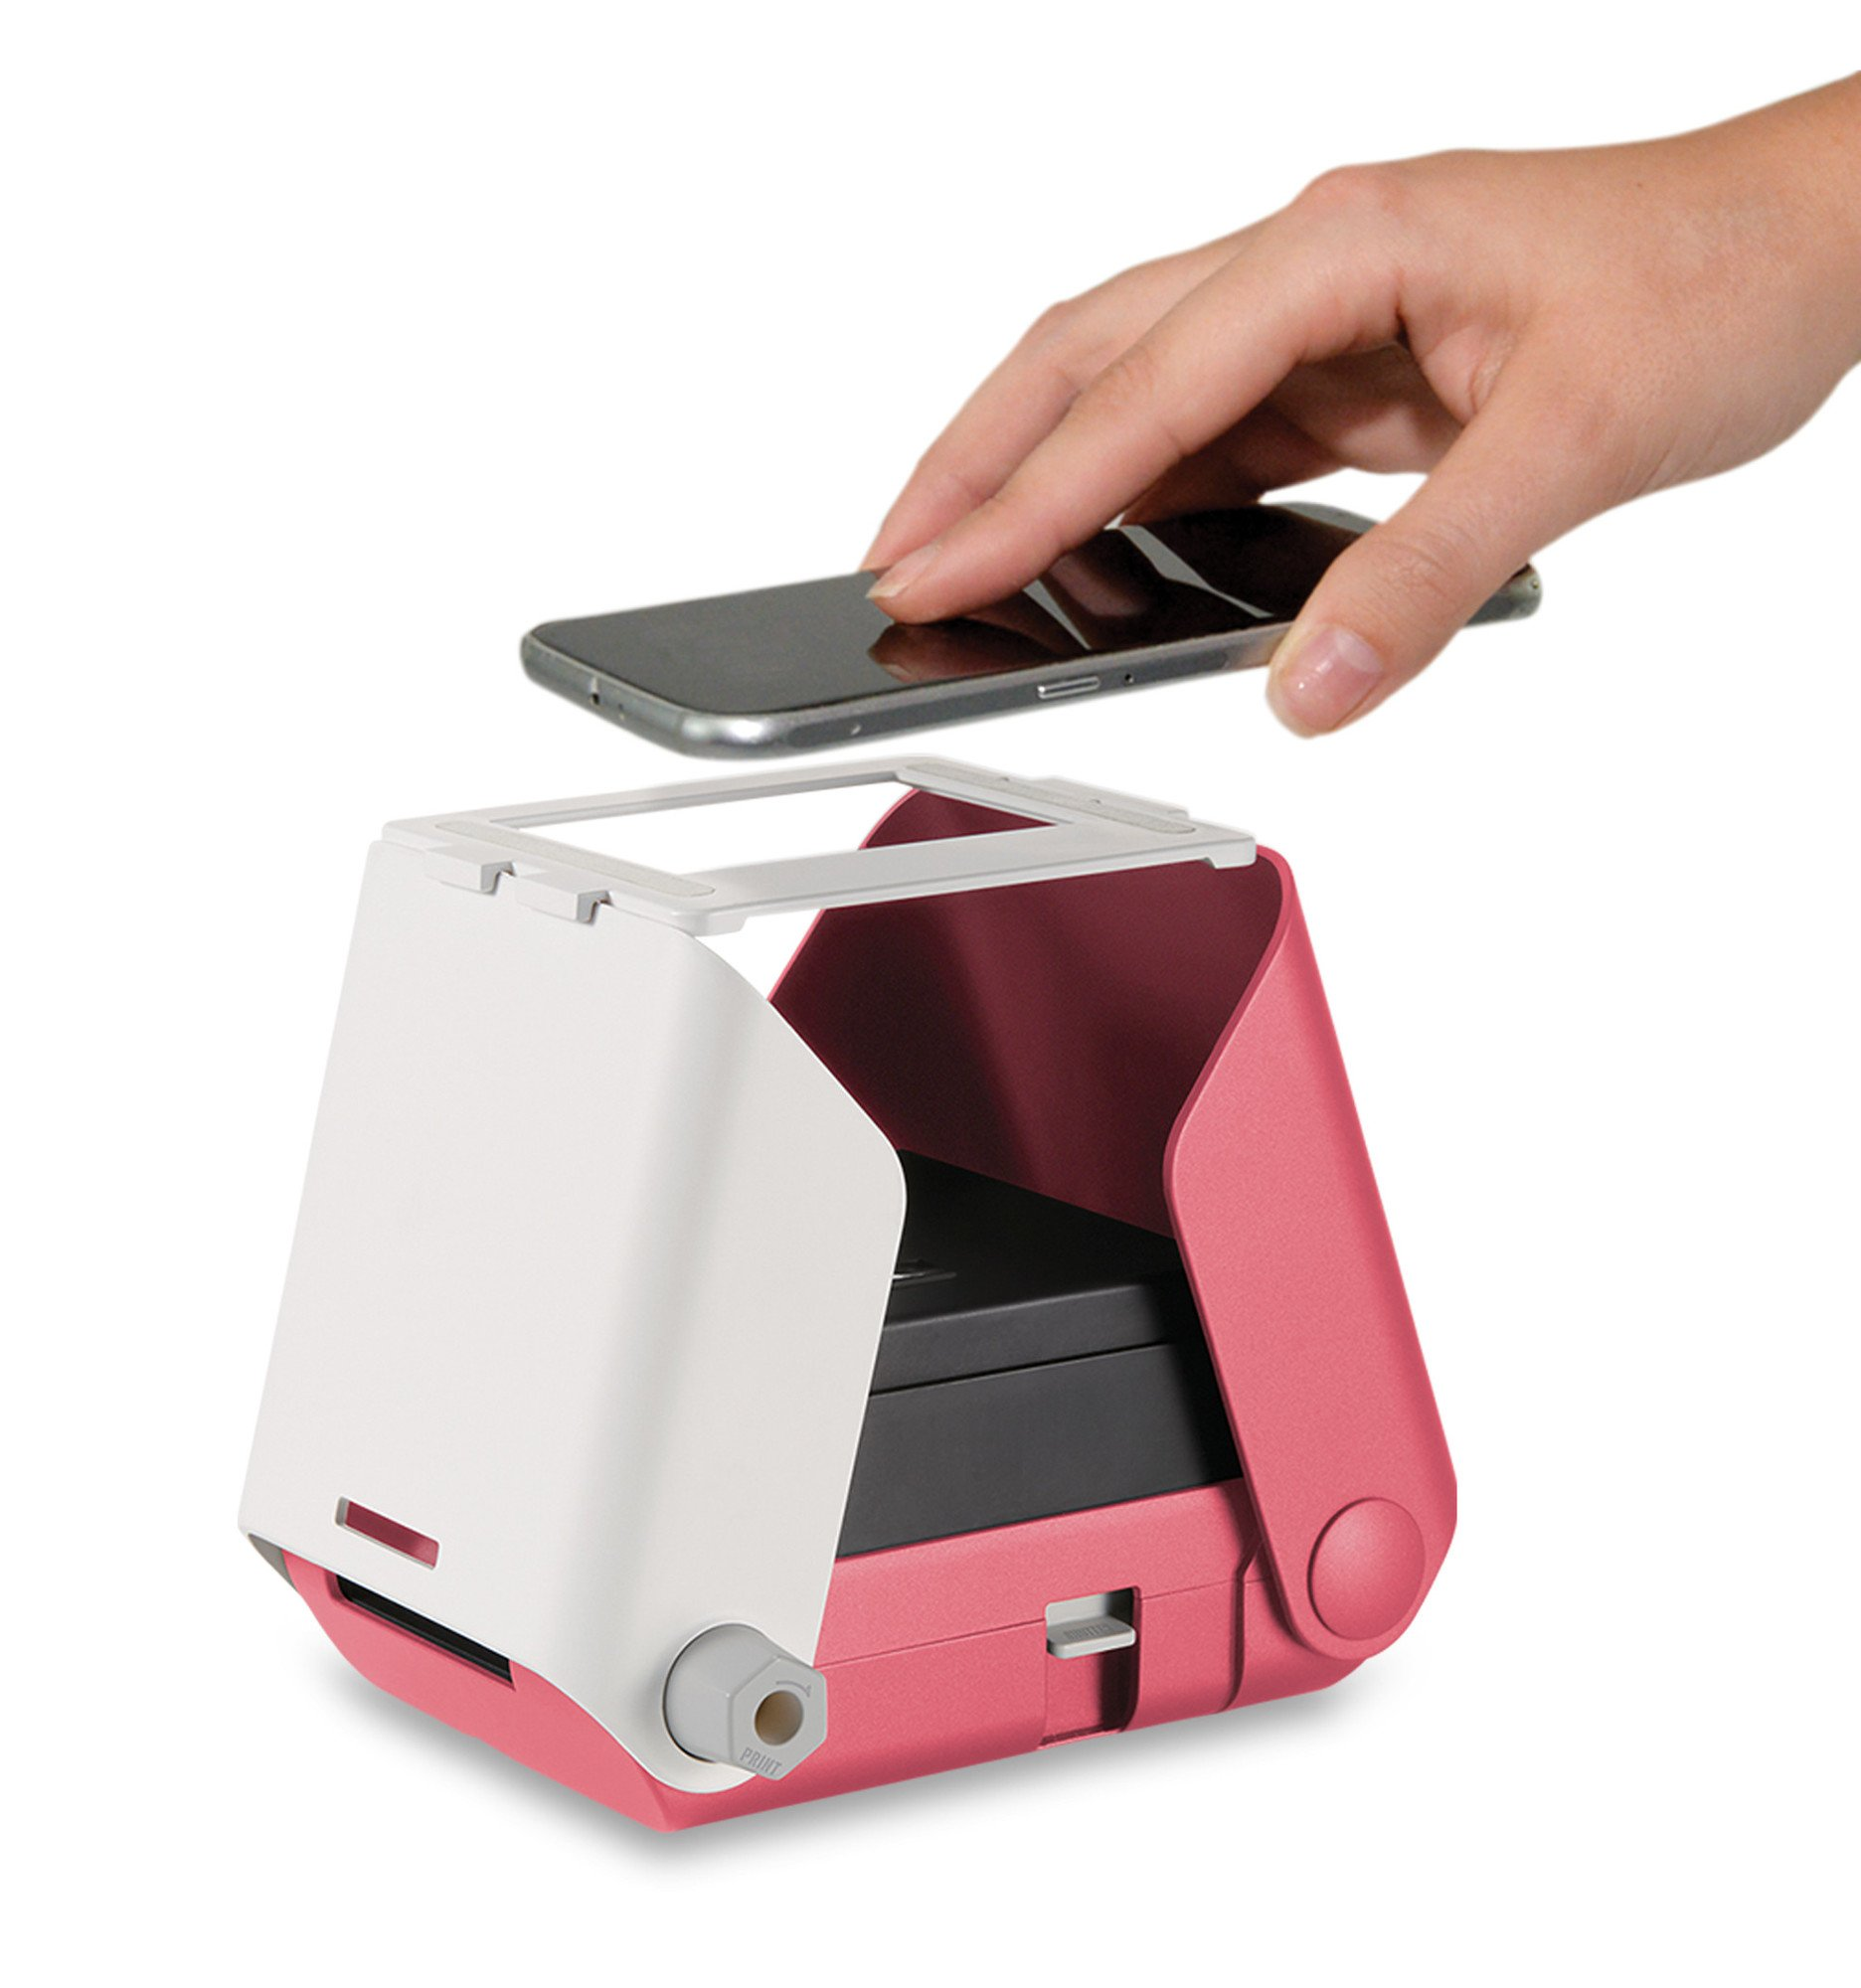 Buy Smartphone Picture Printer Now!